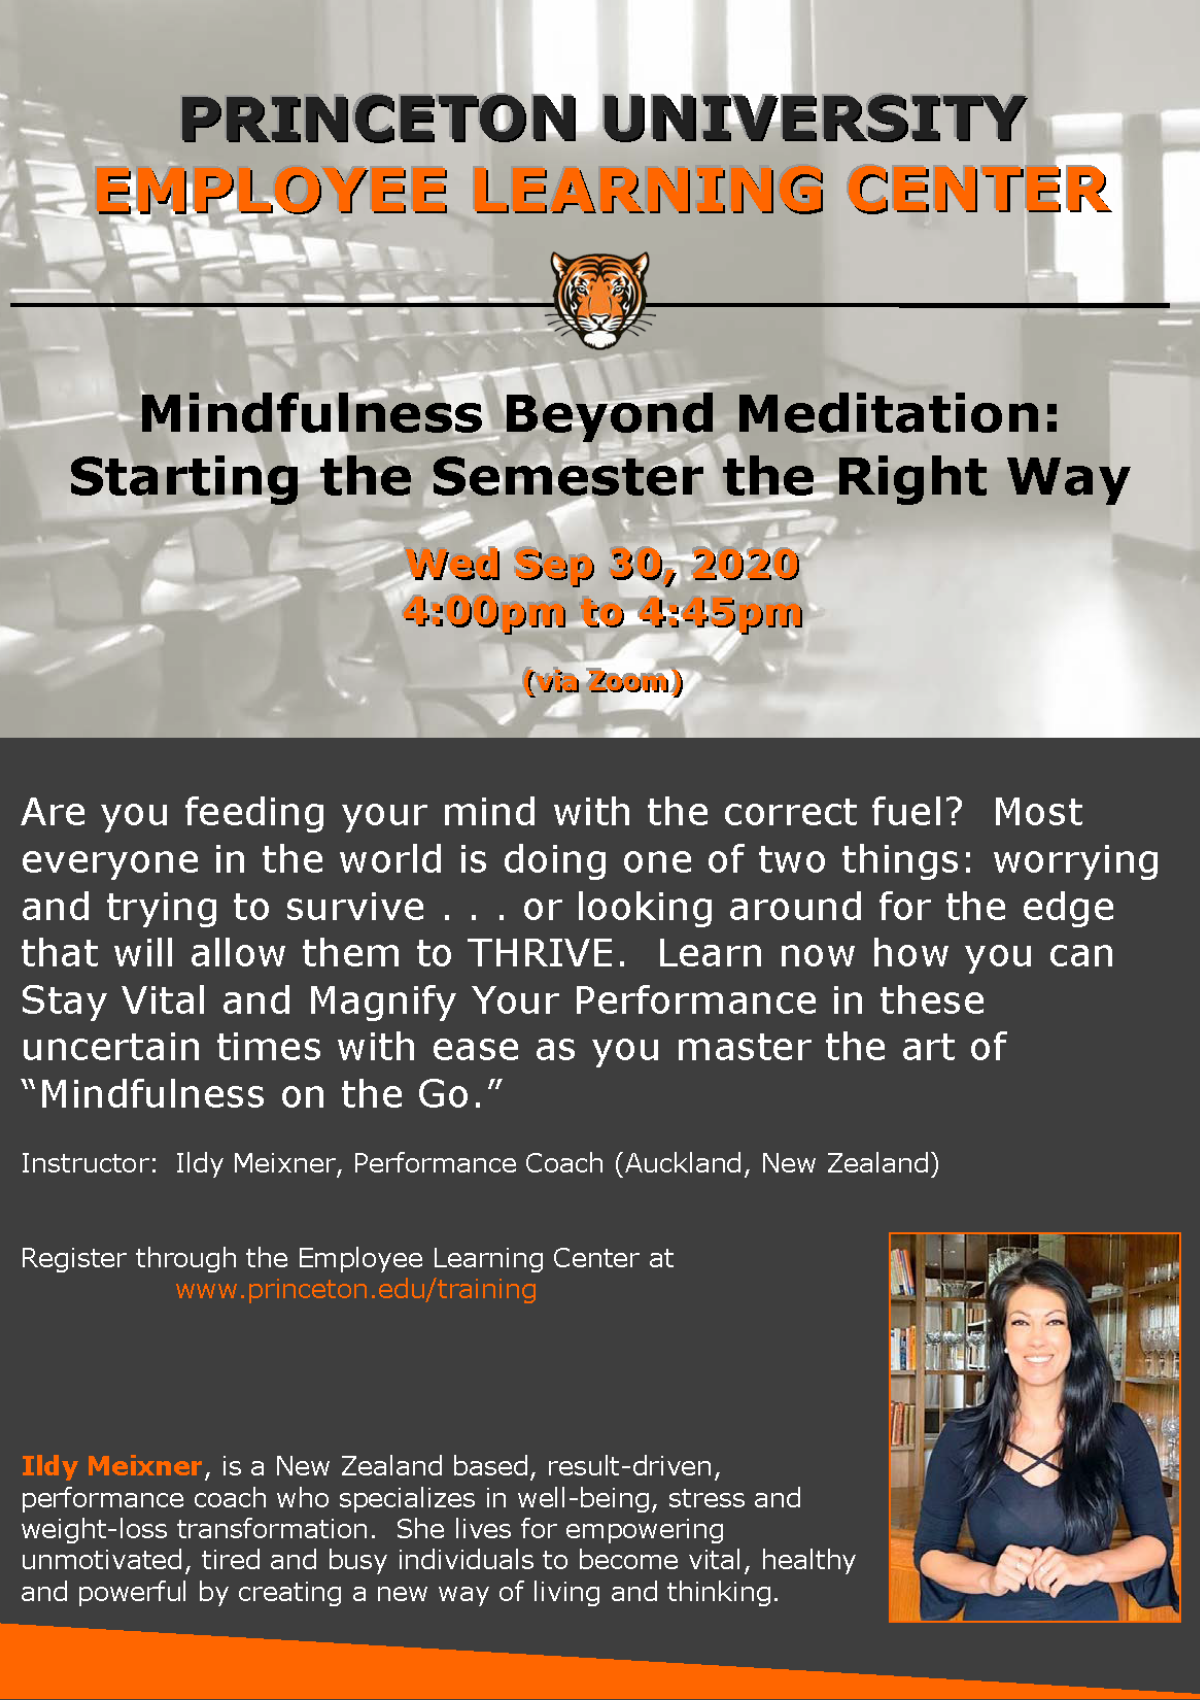 Employee Learning Center: Mindfulness Beyond Meditation: Starting the Semester the Right Way. Wed. Sept 30, 2020 4pm-4:45pm via Zoom